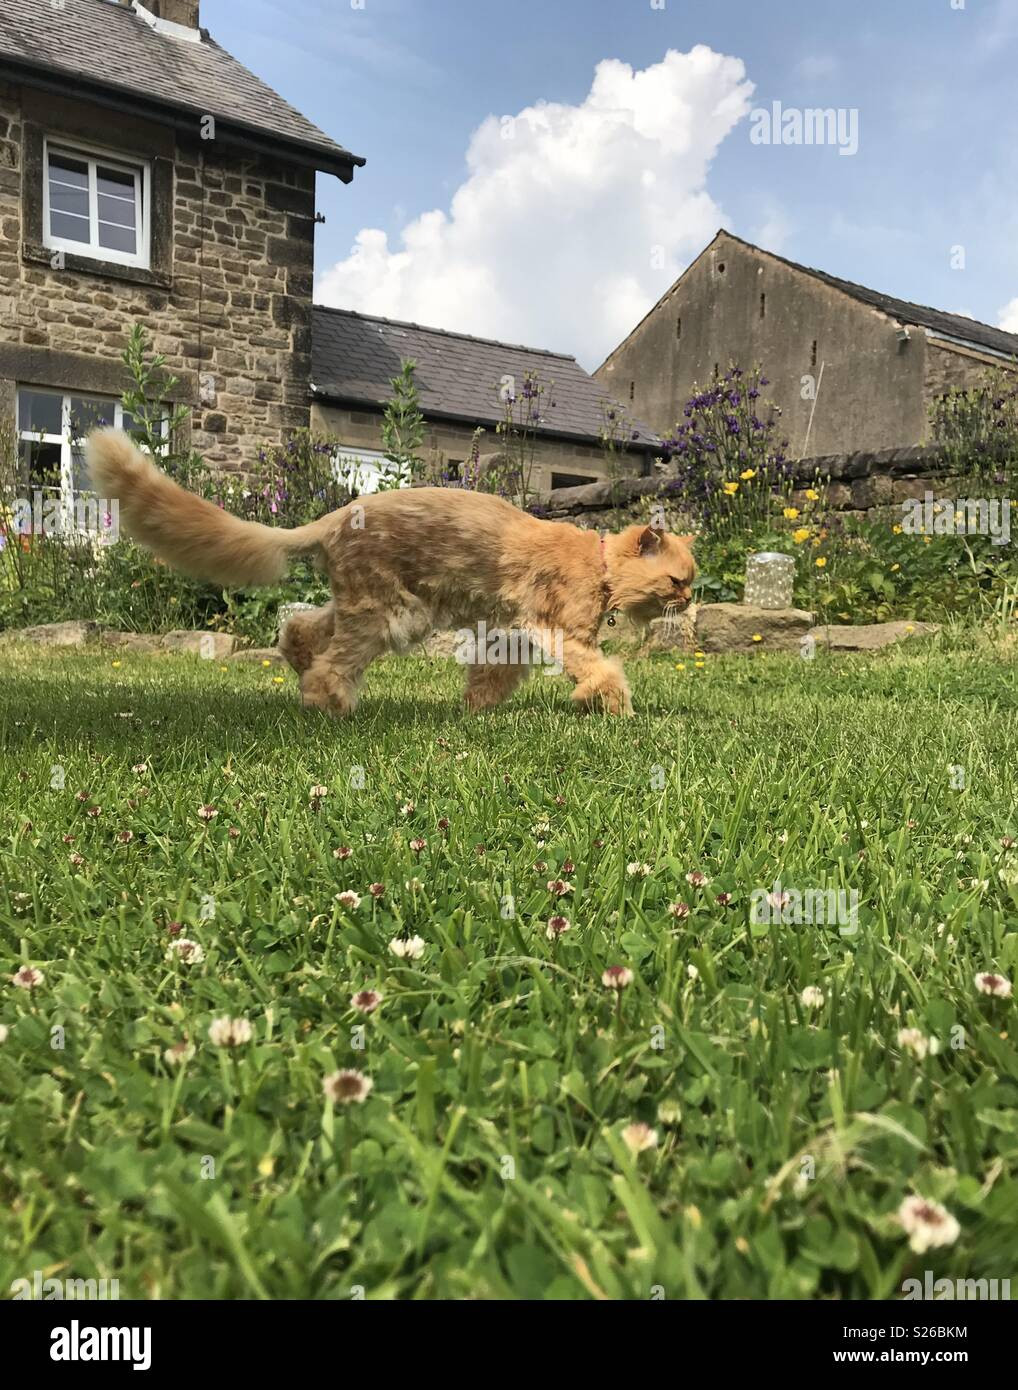 Ginger cat tip toeing across the grass in the garden on a sunny day with fluffy white clouds - Stock Image